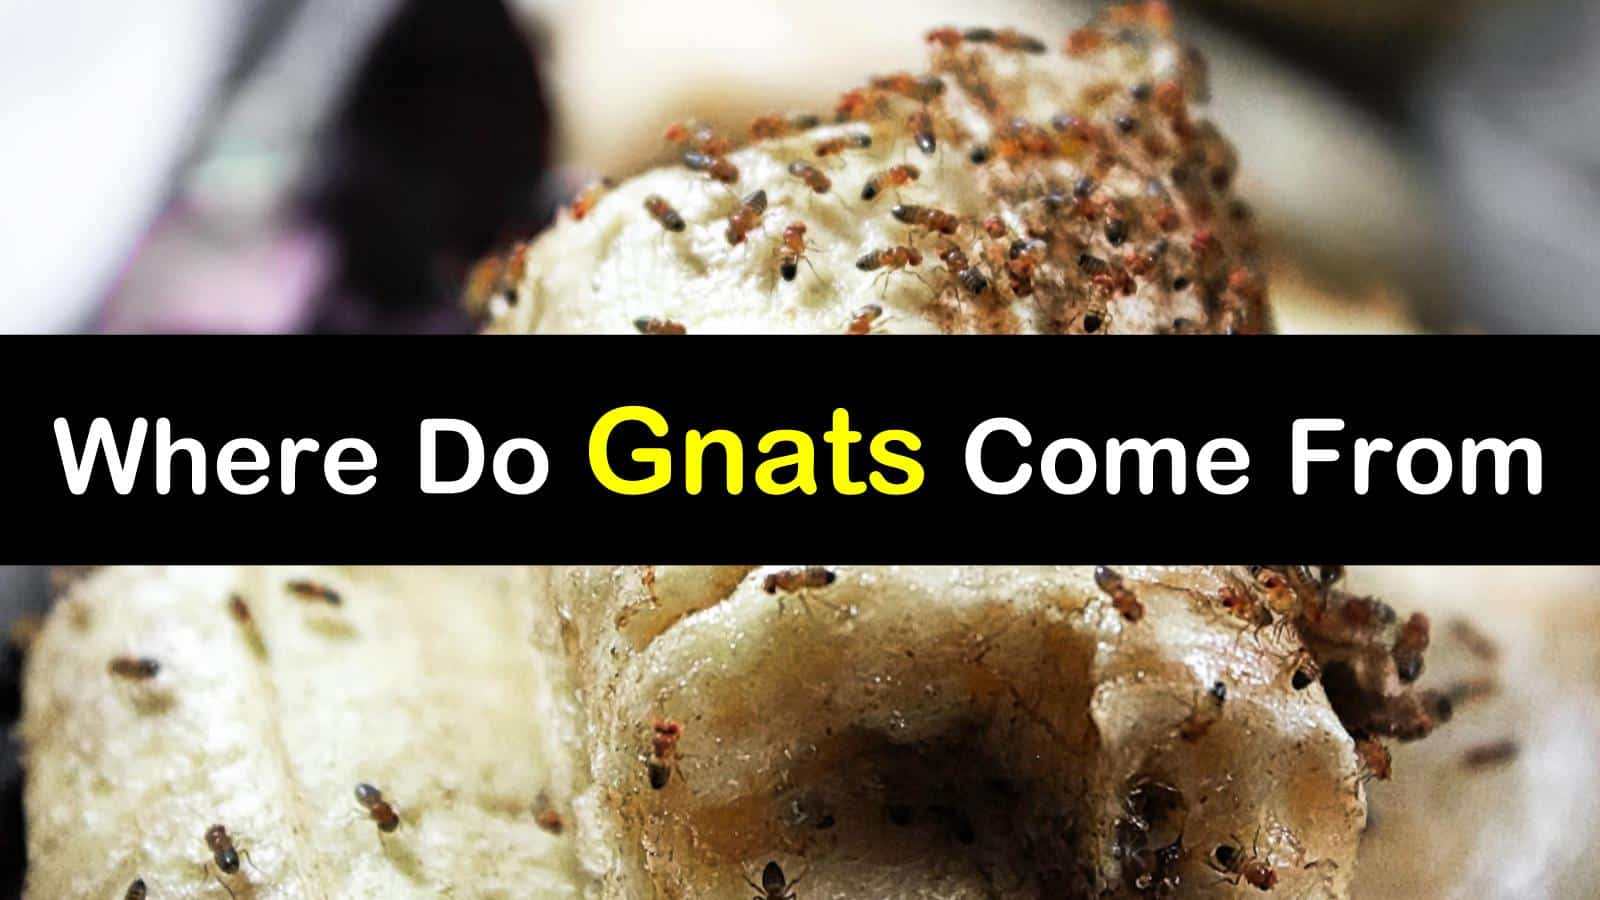 where do gnats come from titlimg1